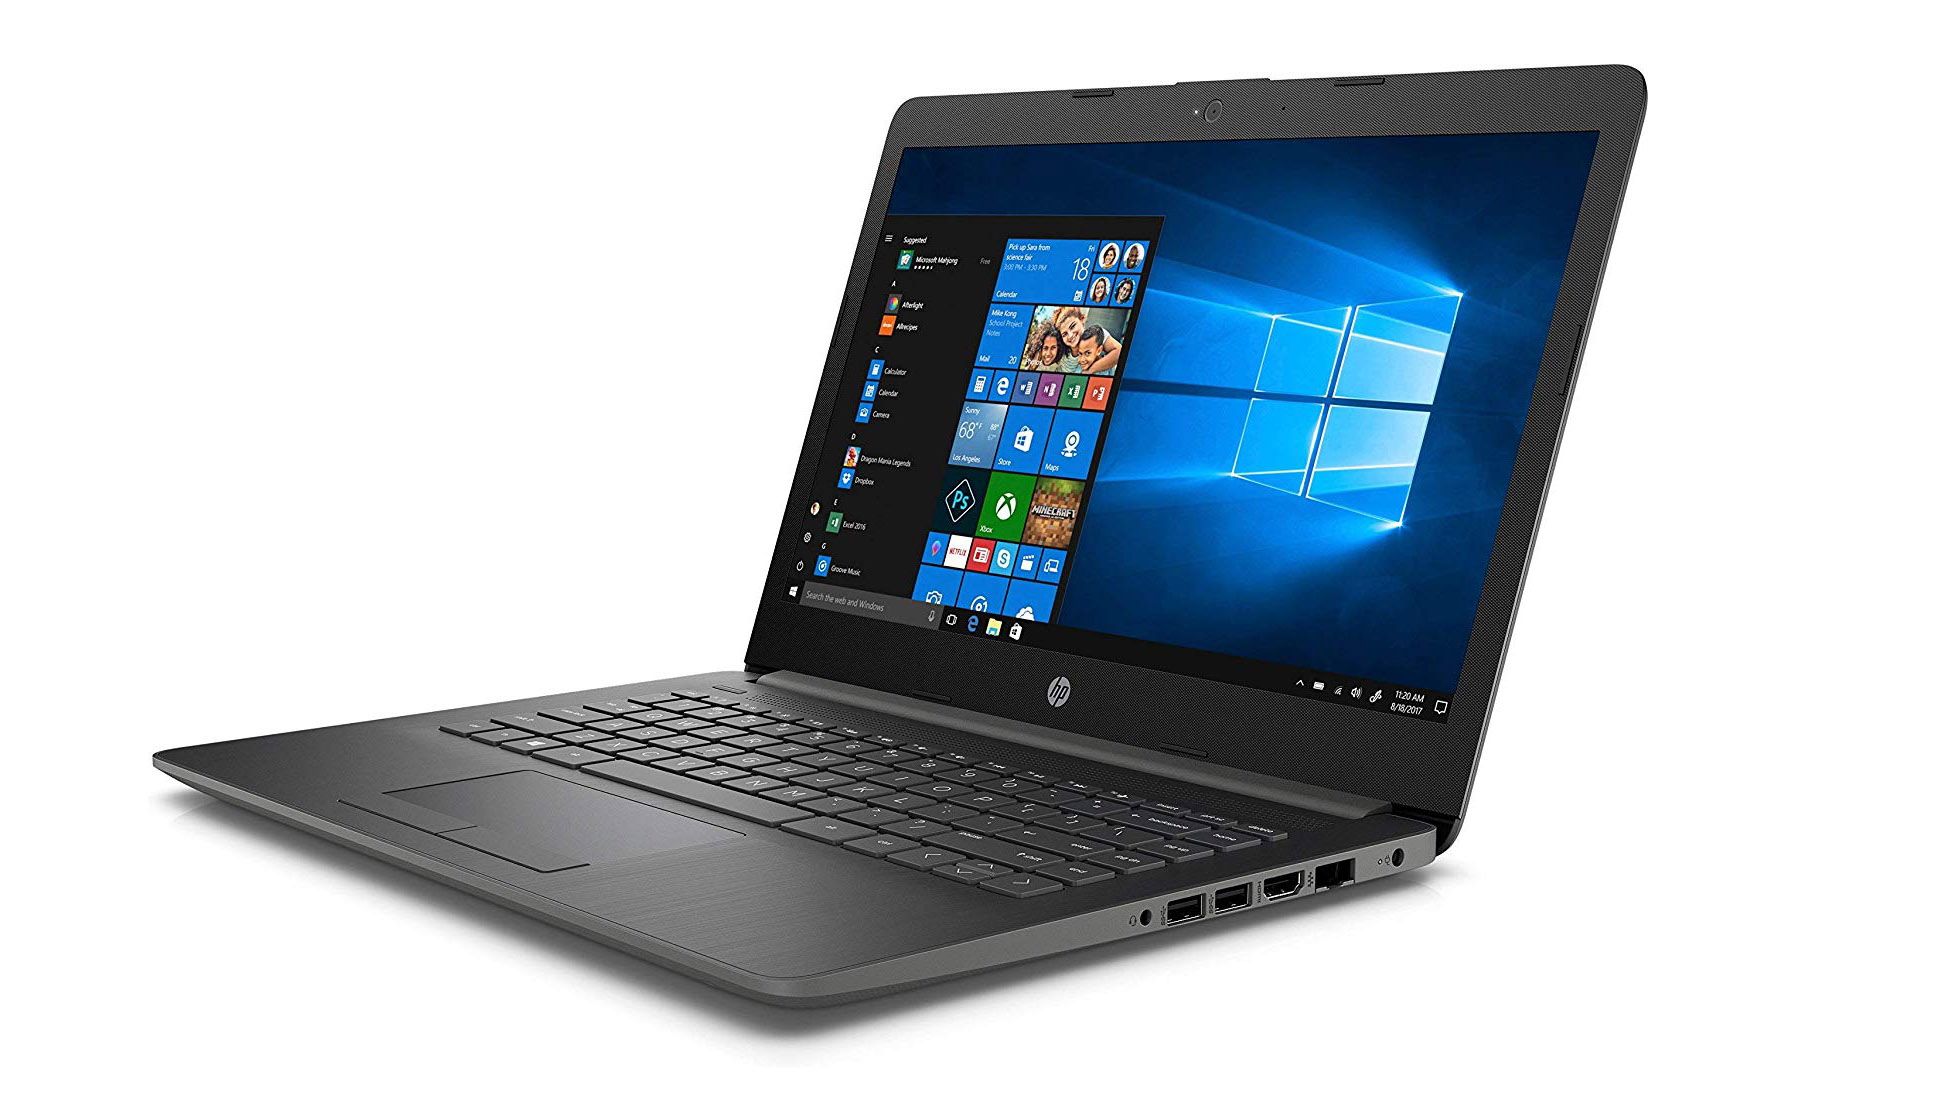 cheap laptops Sydney offered by Bufferstock